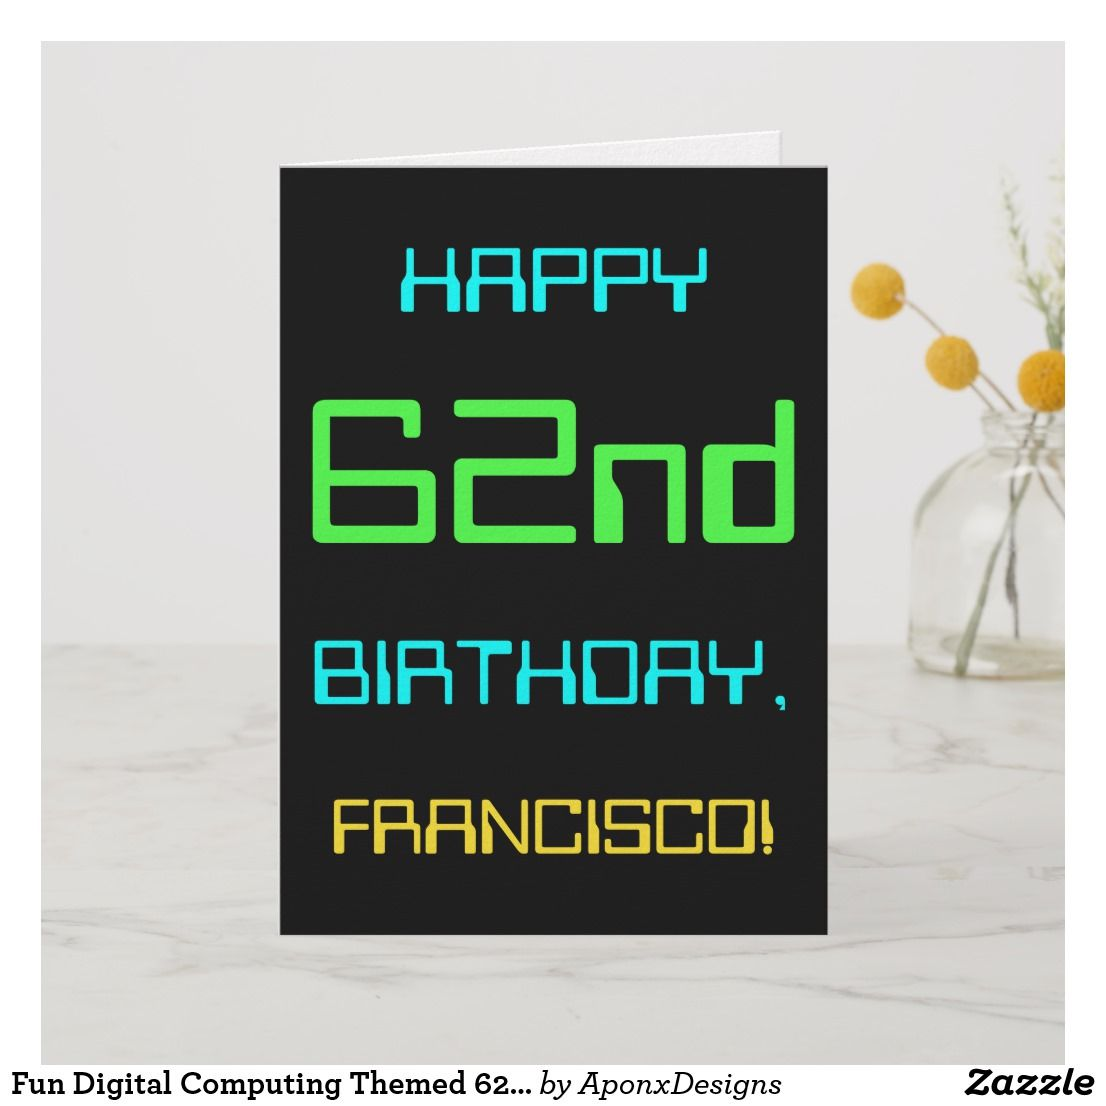 Fun Digital Computing Themed 62nd Birthday Card Greeting Cards Greetings 19th